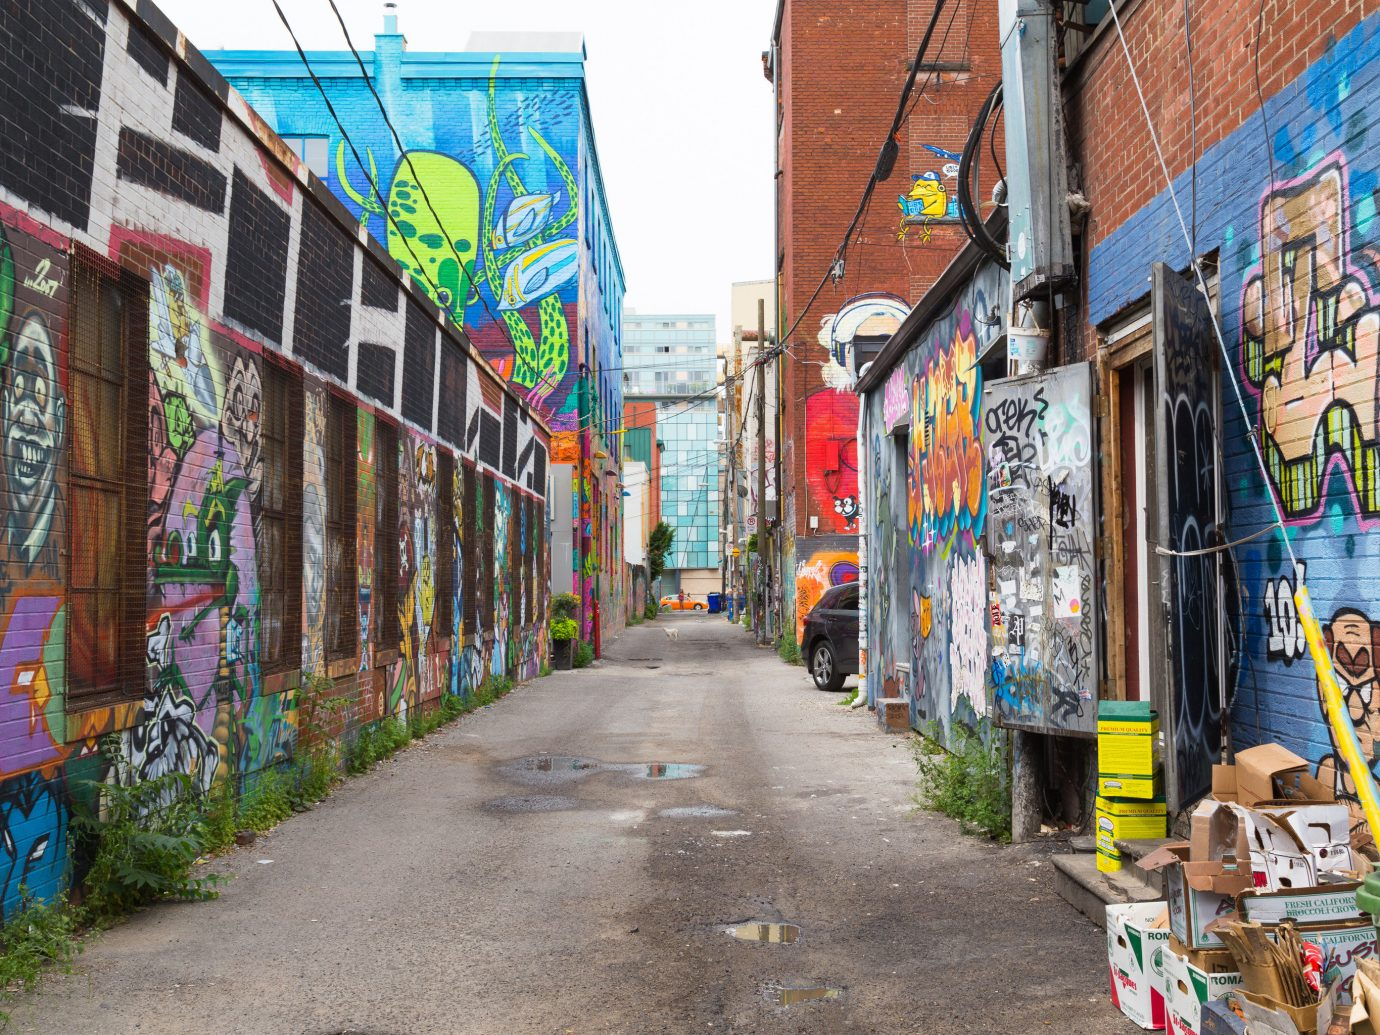 Canada Montreal Toronto Trip Ideas scene way sidewalk outdoor neighbourhood alley Town street urban area road City graffiti art lane mural metropolis street art pedestrian bazaar colorful